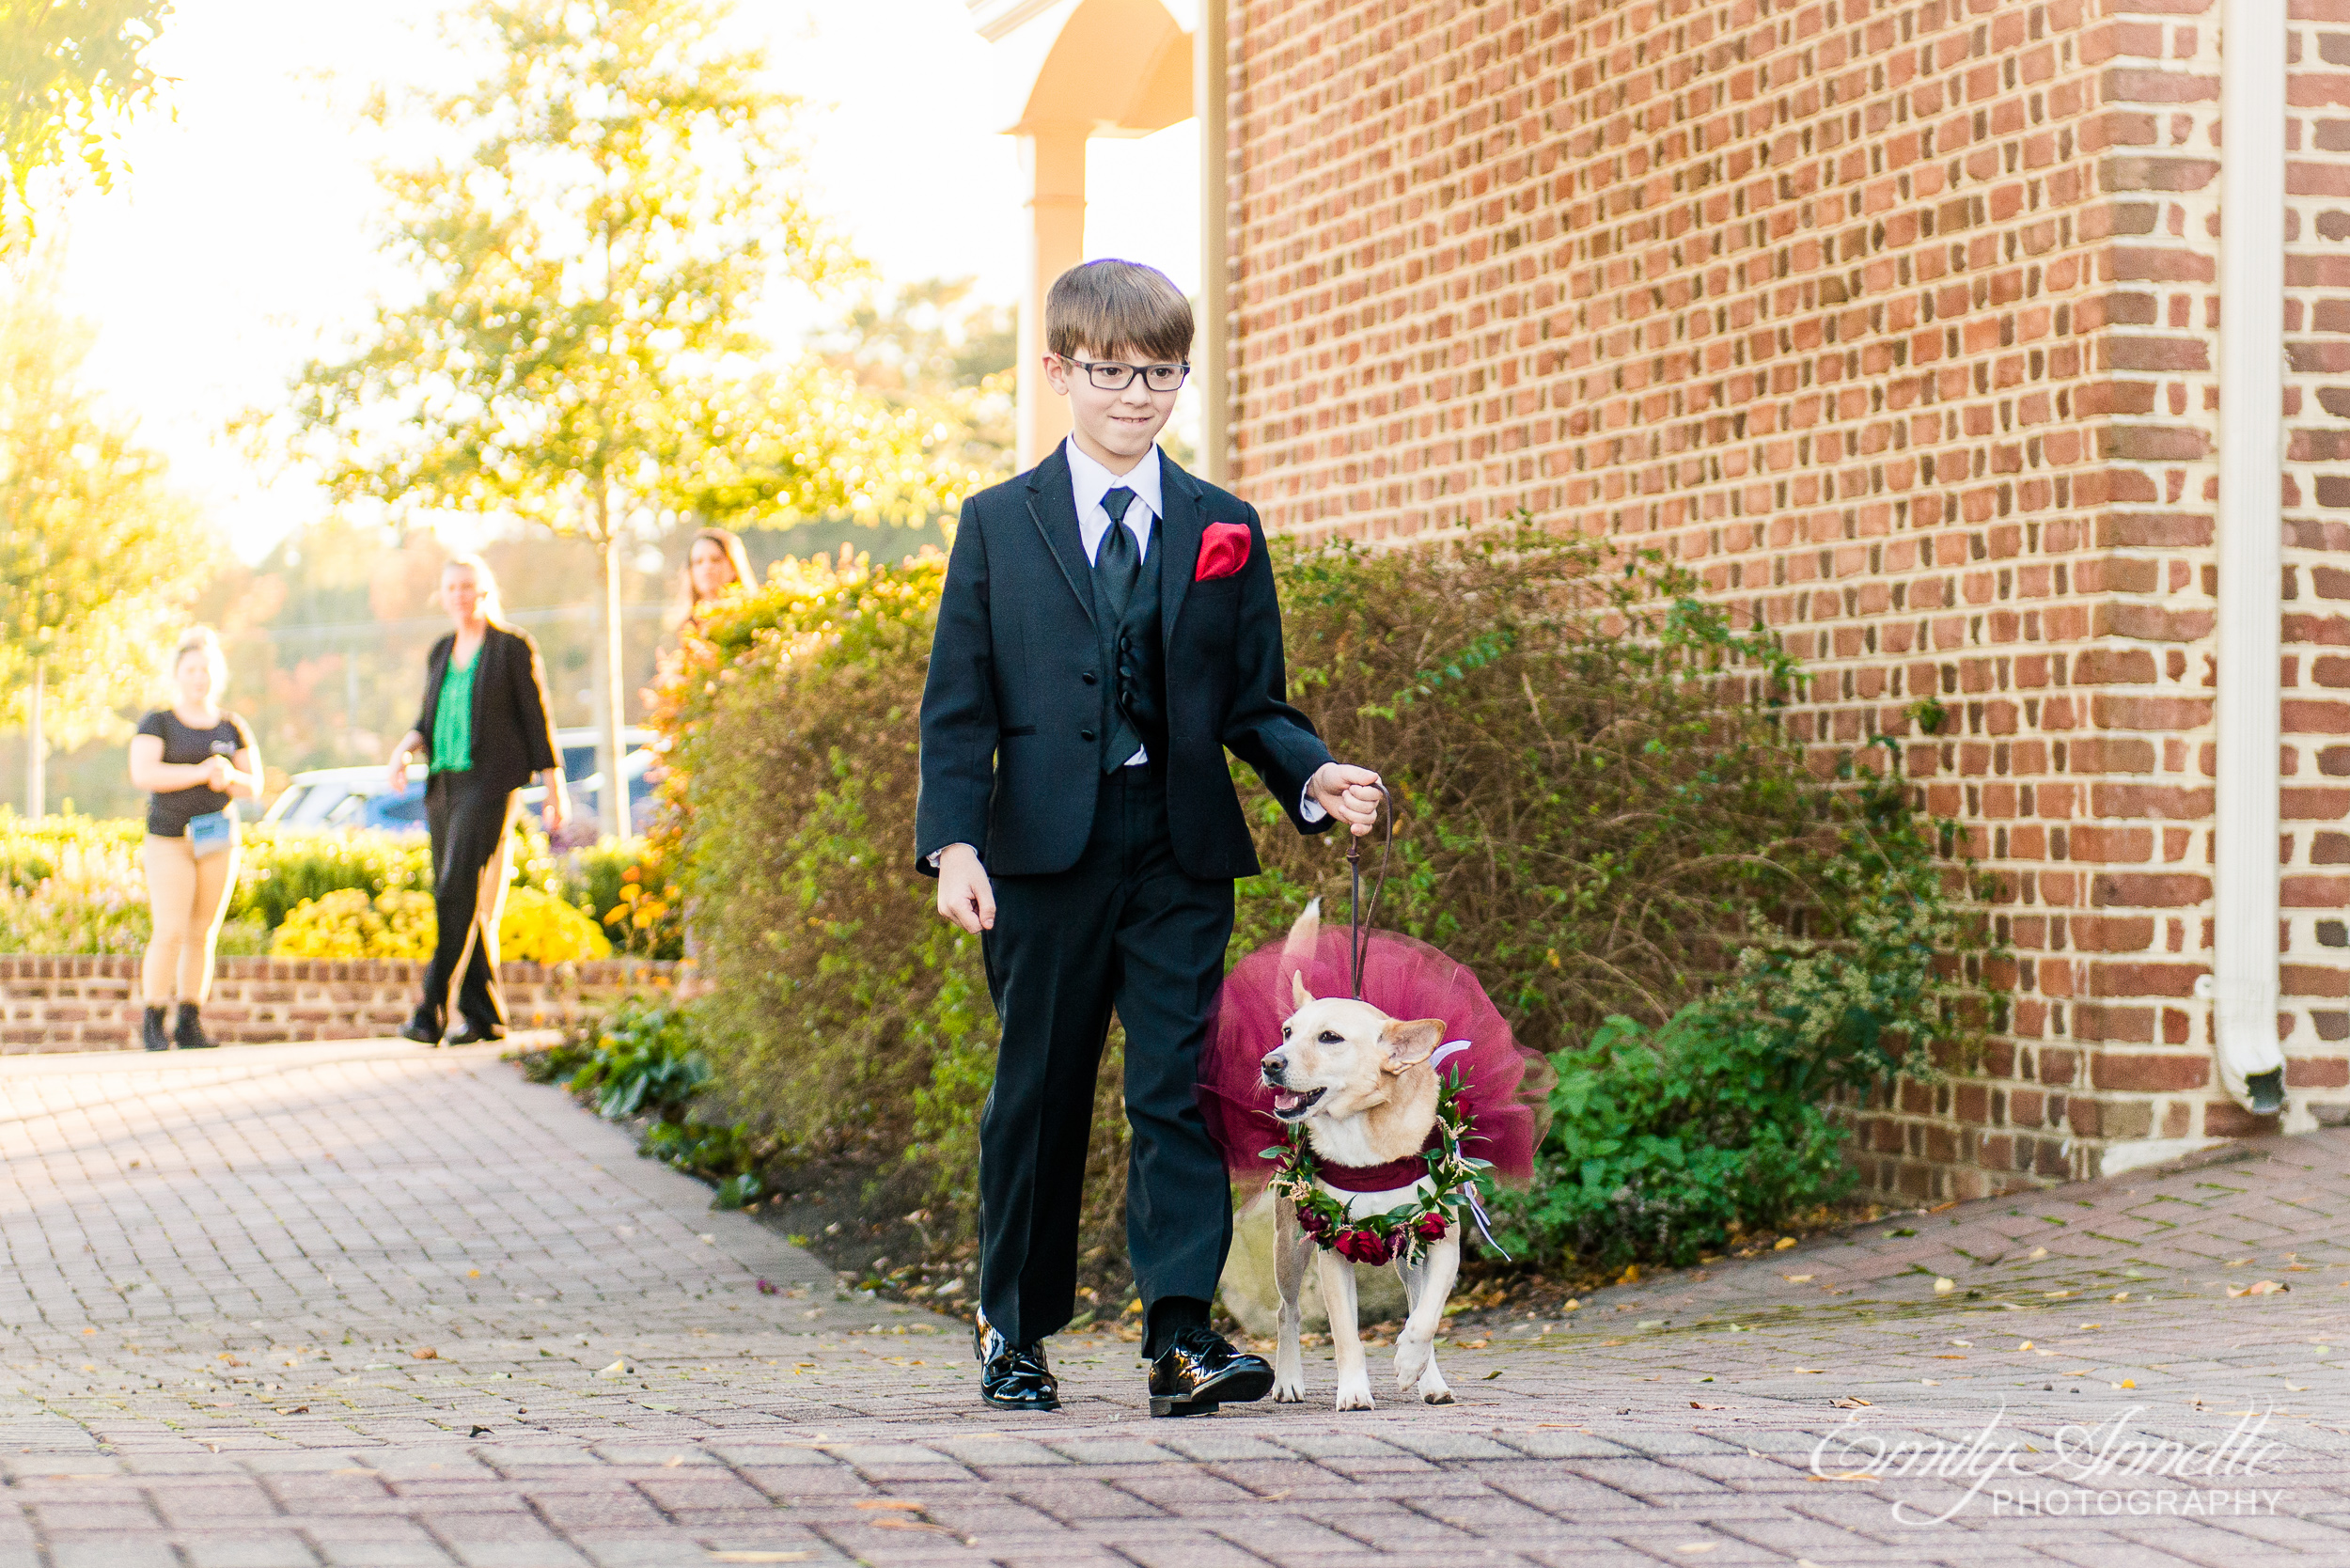 A ring bearer with a dog in a flower girl dress walking into the wedding ceremony at Willow Oaks Country Club in Richmond, Virginia